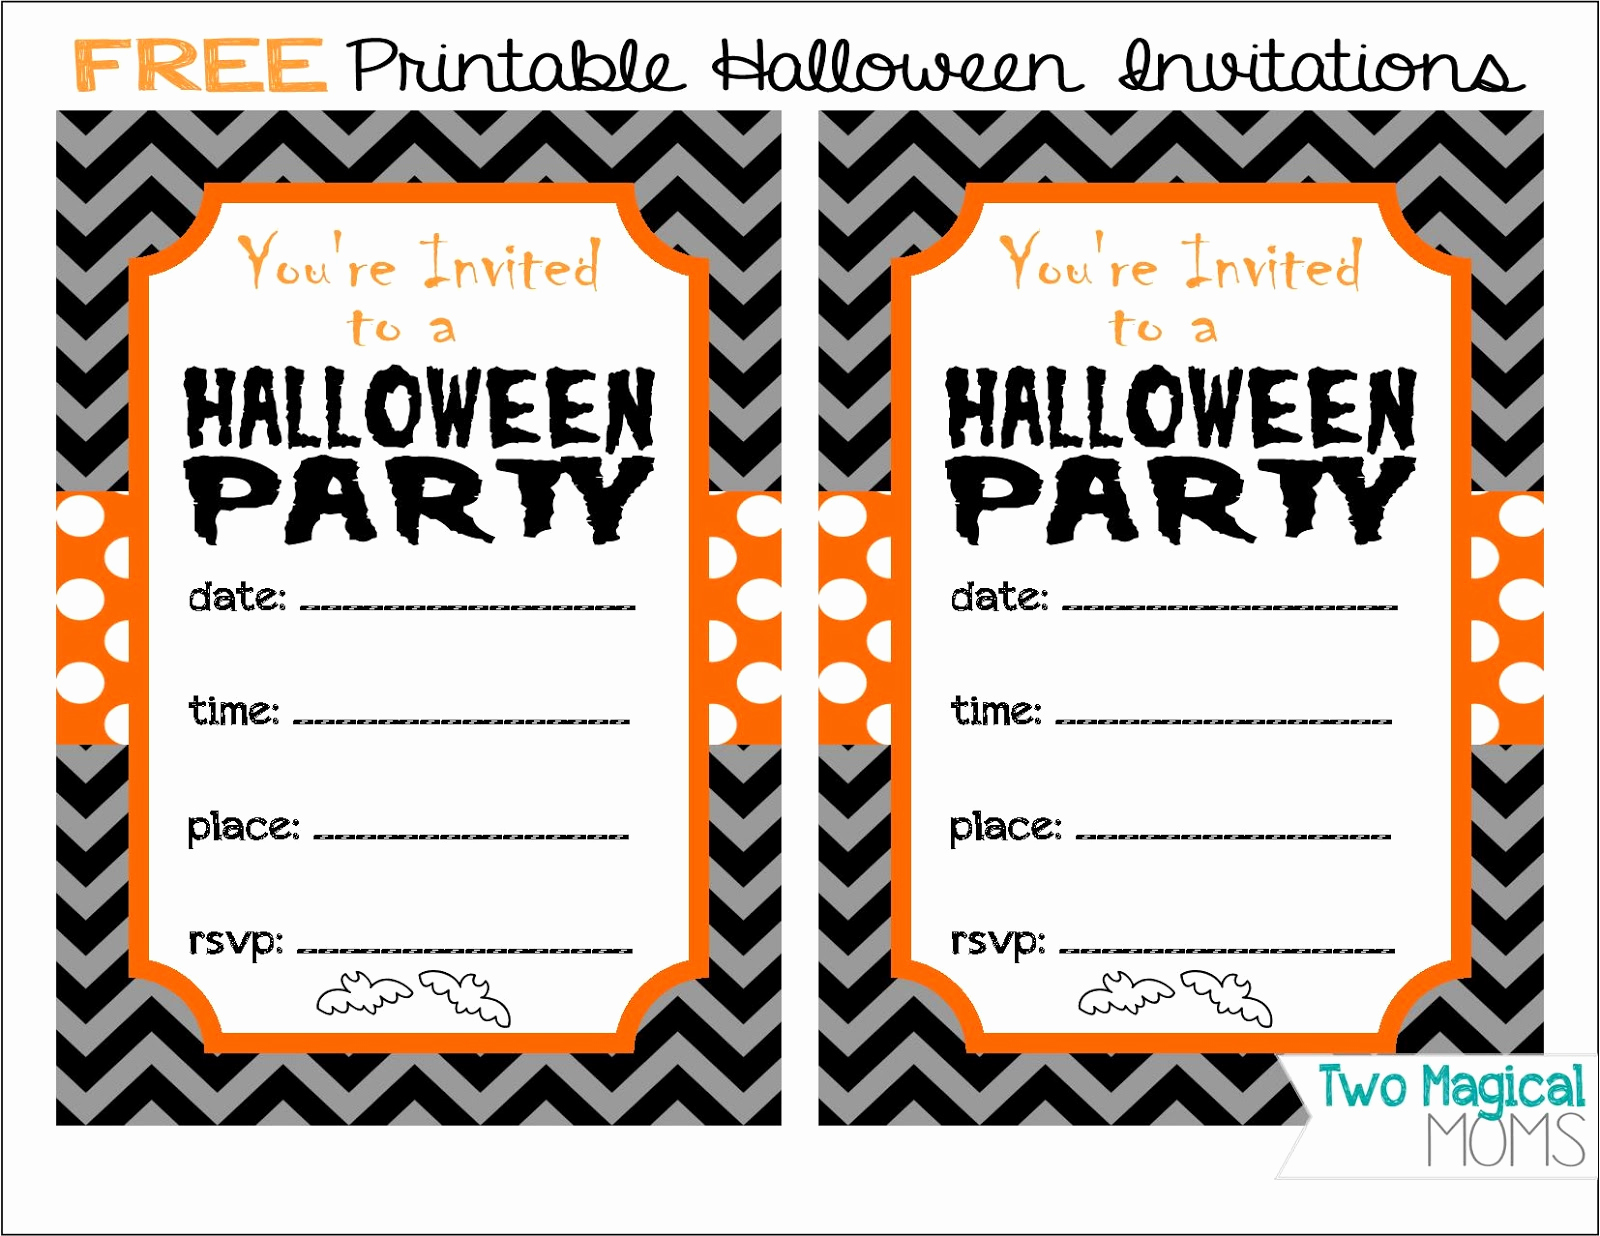 Free Printable Halloween Invitation Template Luxury Two Magical Moms Free Printable Halloween Invitations